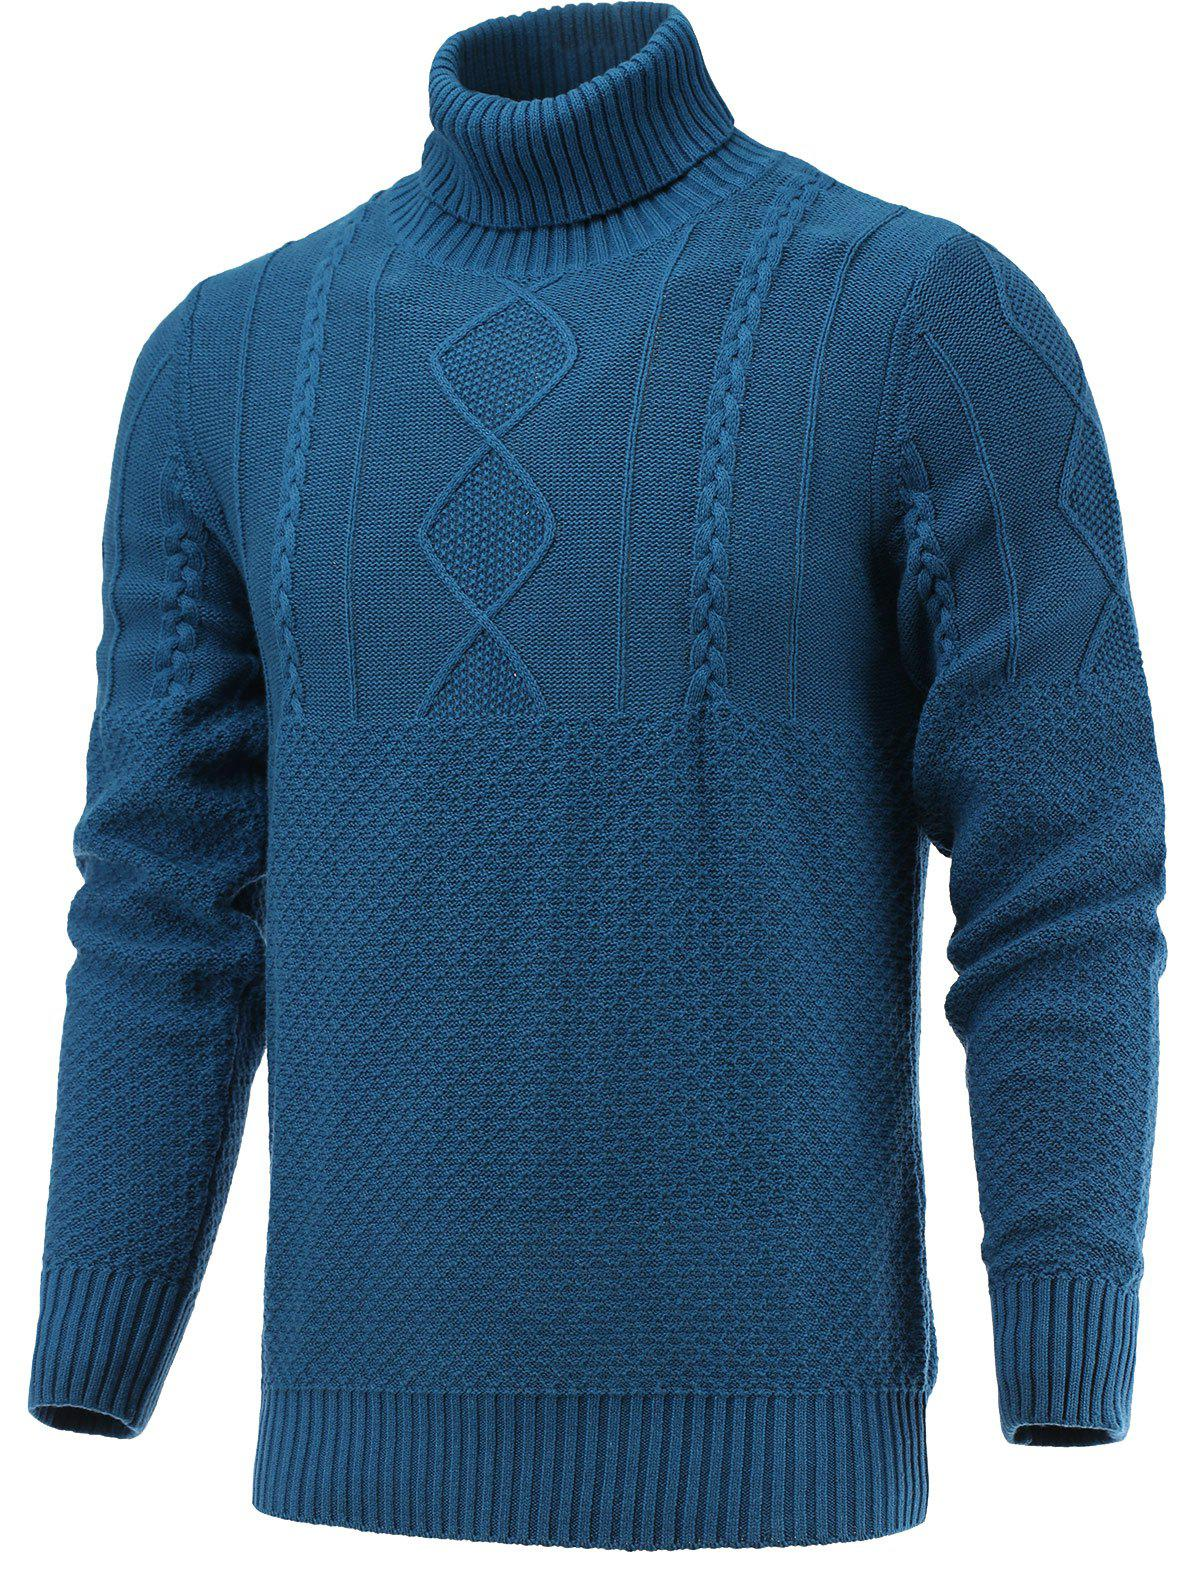 Turtleneck Geometric Knitted Sweater turtleneck slit knitted sweater